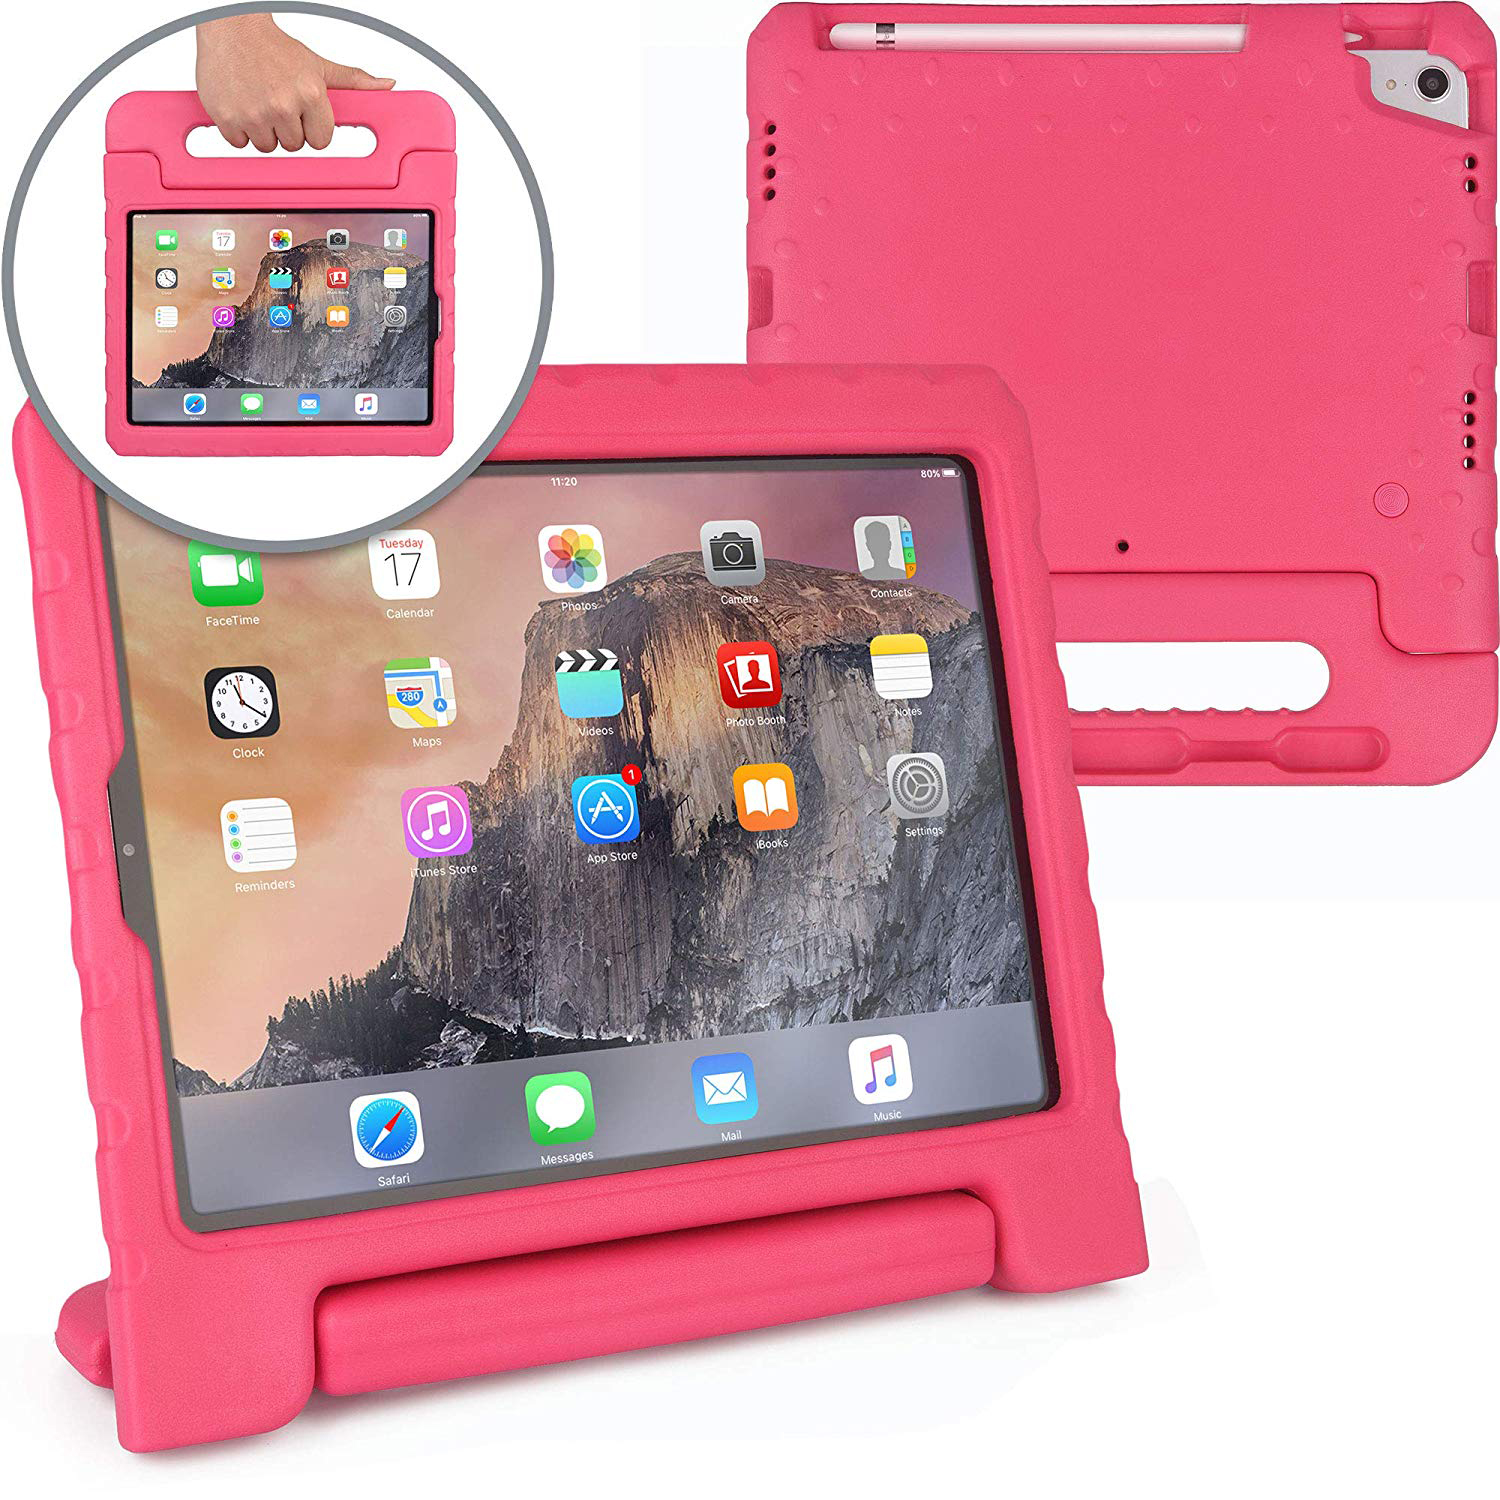 New iPad Pro 12.9 2018 Case, Allytech Dynamo [Rugged Kids Case] Light Weight Protective Case Cover for iPad Pro 12.9 3rd Generation 2018 | Child Proof Cover: Stand, Handle, Pencil Charge Slot, Rose